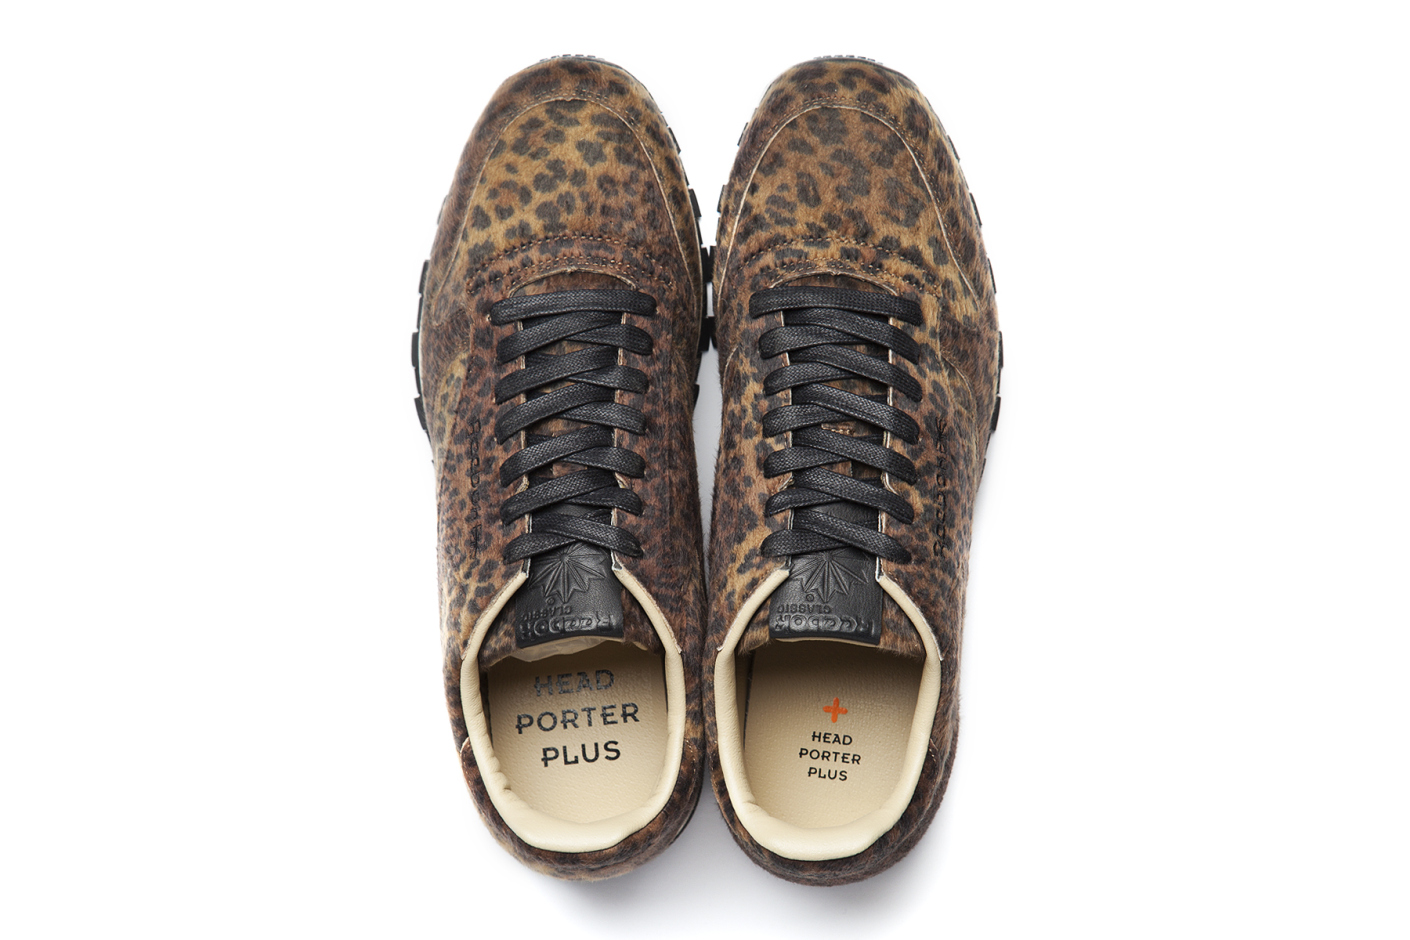 Head Porter Plus x Reebok Classic Leather leopard top